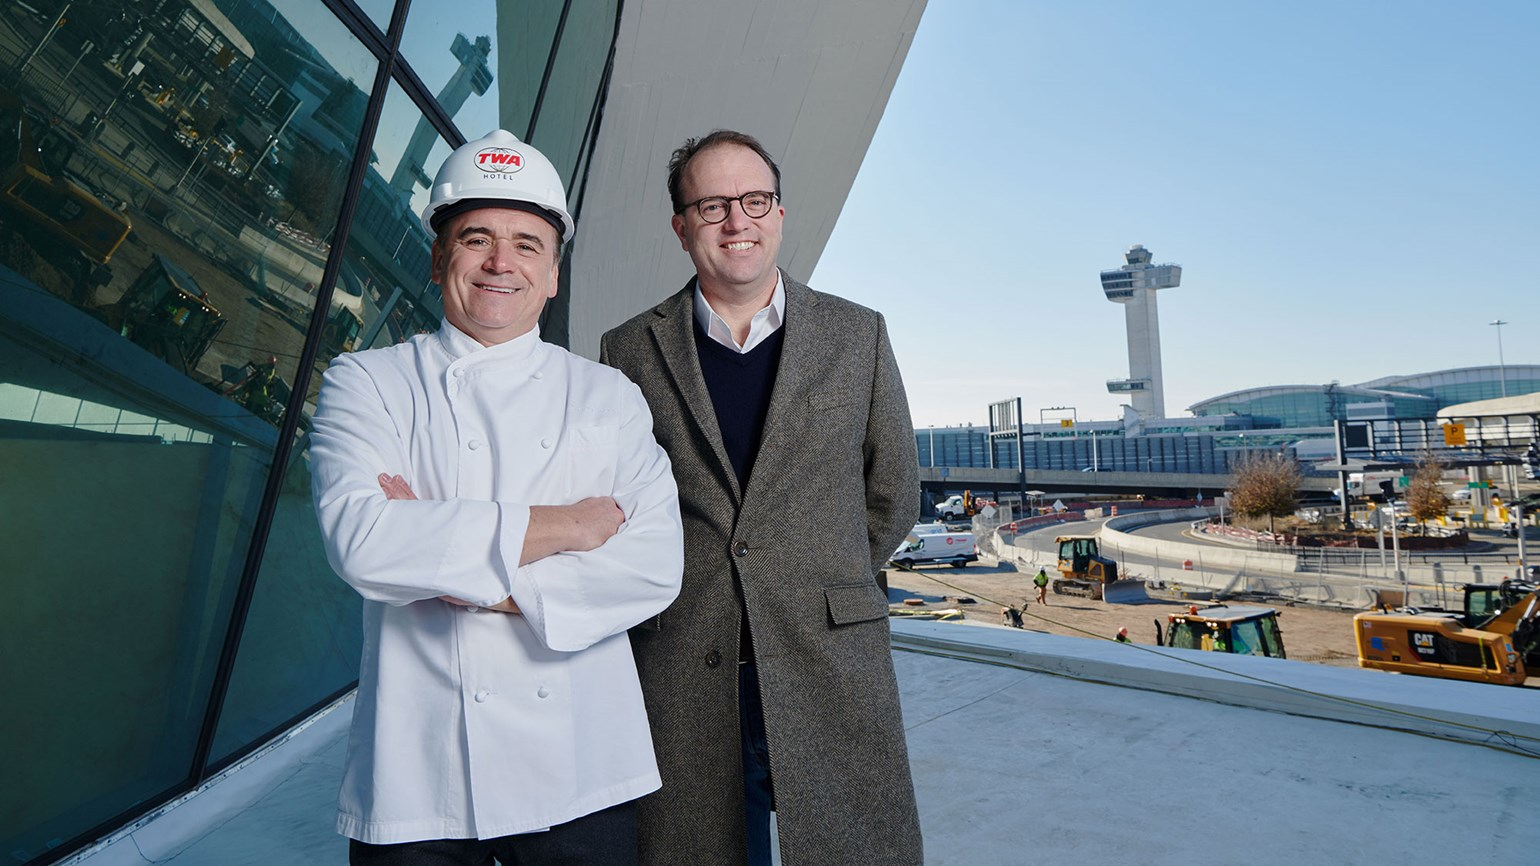 TWA Hotel to feature Paris Cafe